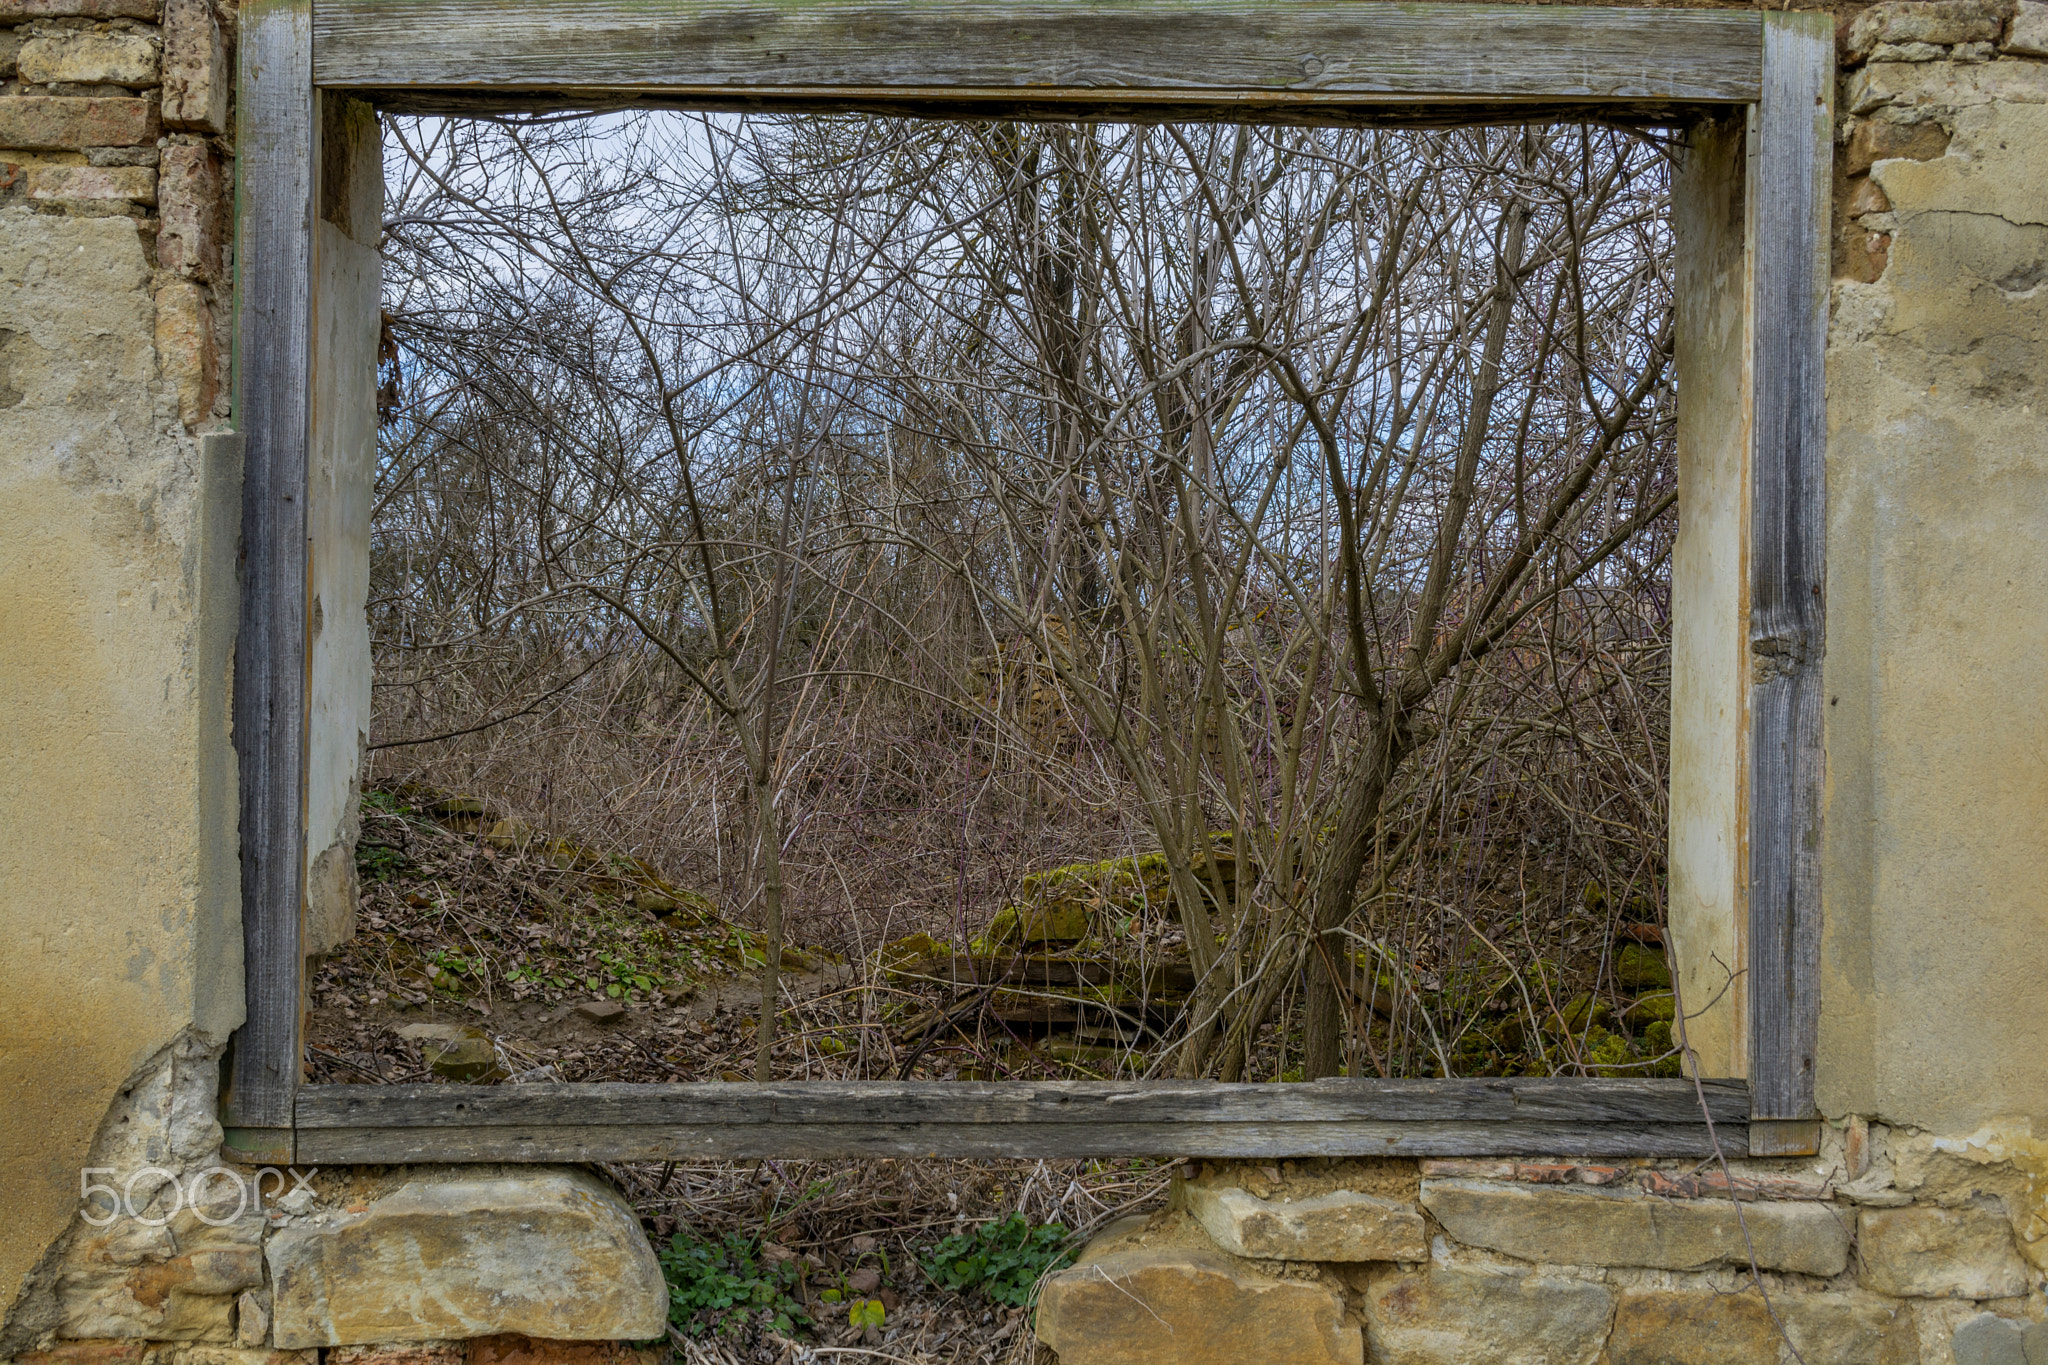 View from a wood window of an old ruin house